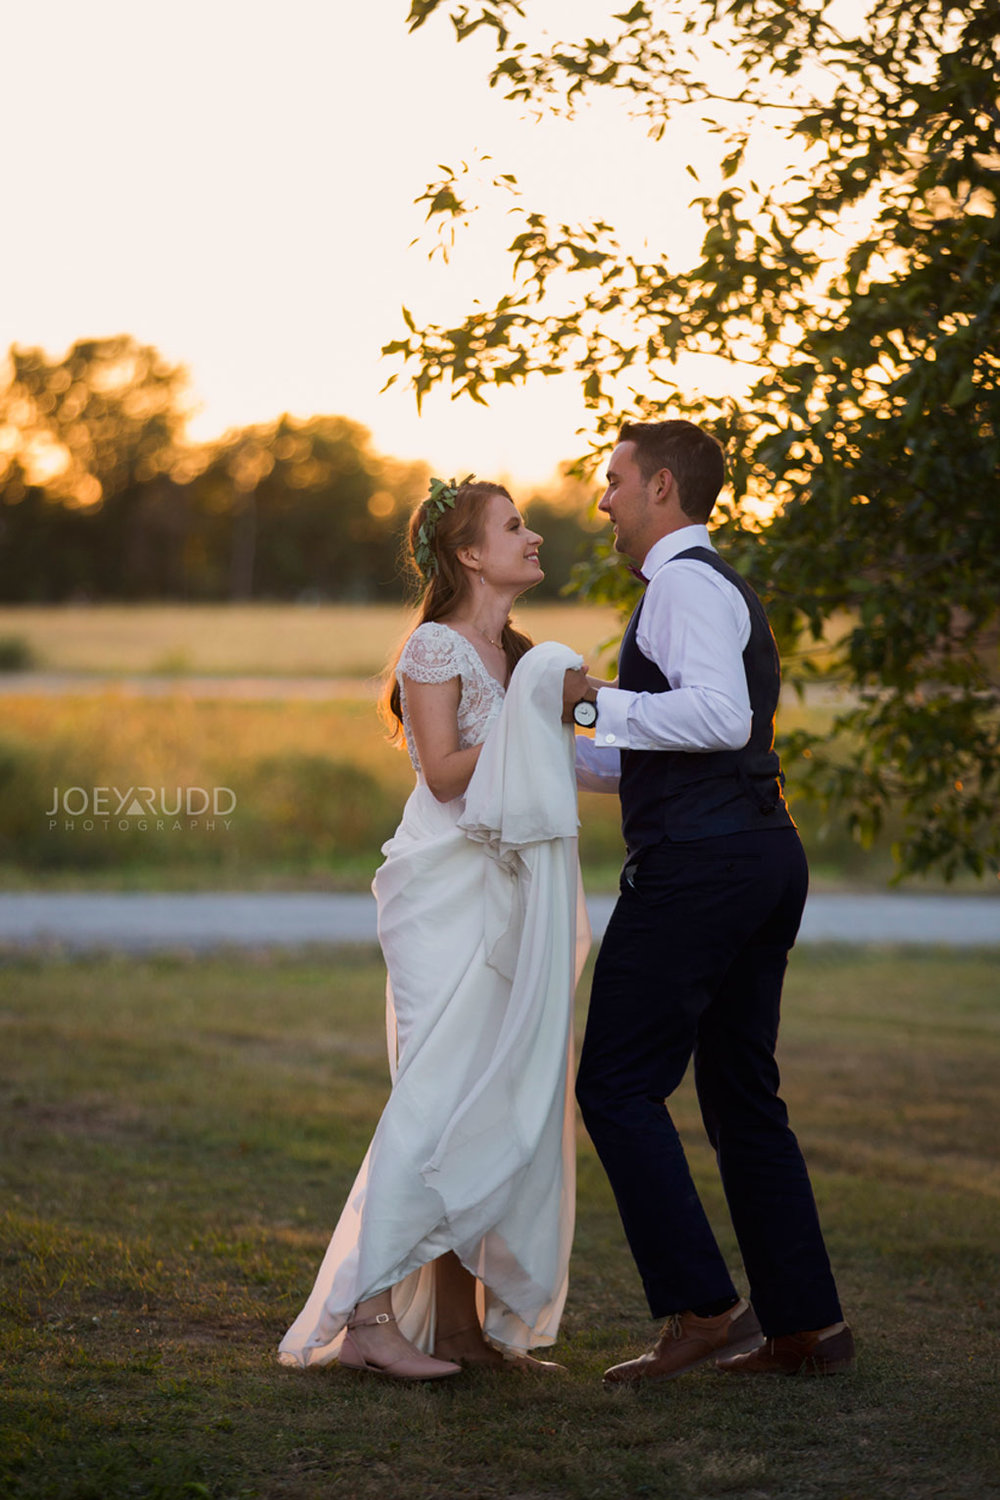 2018_09_08---Sarah-&-Zephir-533.jpgFarm Wedding, Ottawa Wedding, Ottawa Wedding Photographer, ottawa photography, ottawa wedding photography, joey rudd photography, ottawa photographer, wedding photos, wedding photo inspiration, rustic wedding, farm, natural photos, candid wedding photos, bride and groom, wedding photo with old car, candid photos, reception, sunset, golden hour, candid, evening dancing